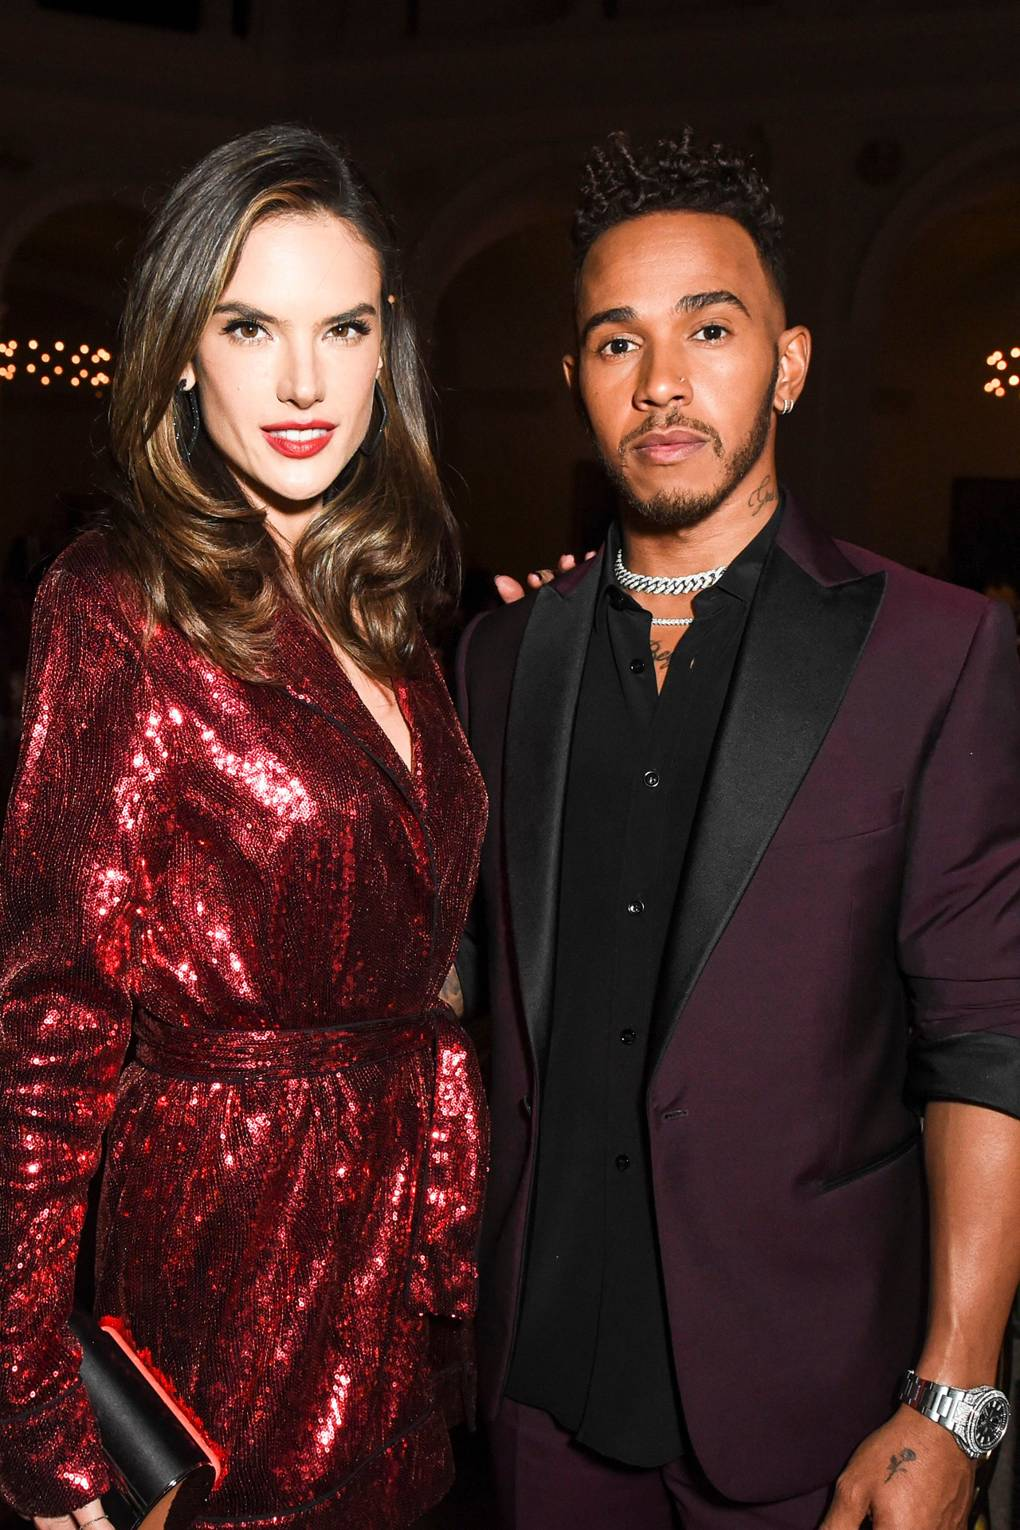 CFDA Awards 2018 (after party) - Alessandra Ambrosio i Lewis Hamilton